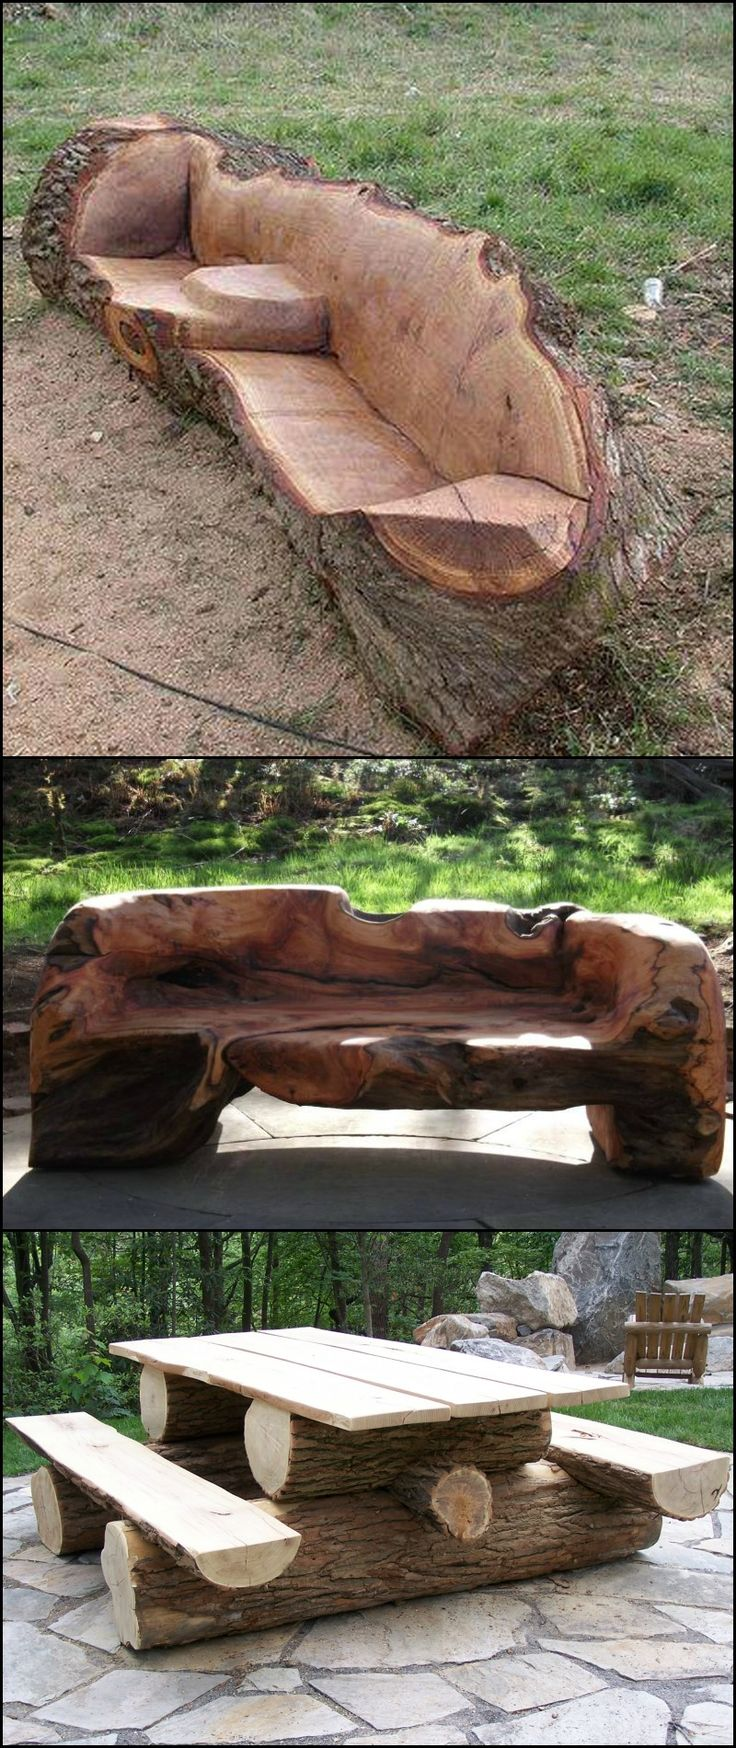 Unique Furniture Made From Tree Stumps And Logs Aside from their beauty,  what makes these pieces of furniture astonishing is that it takes great